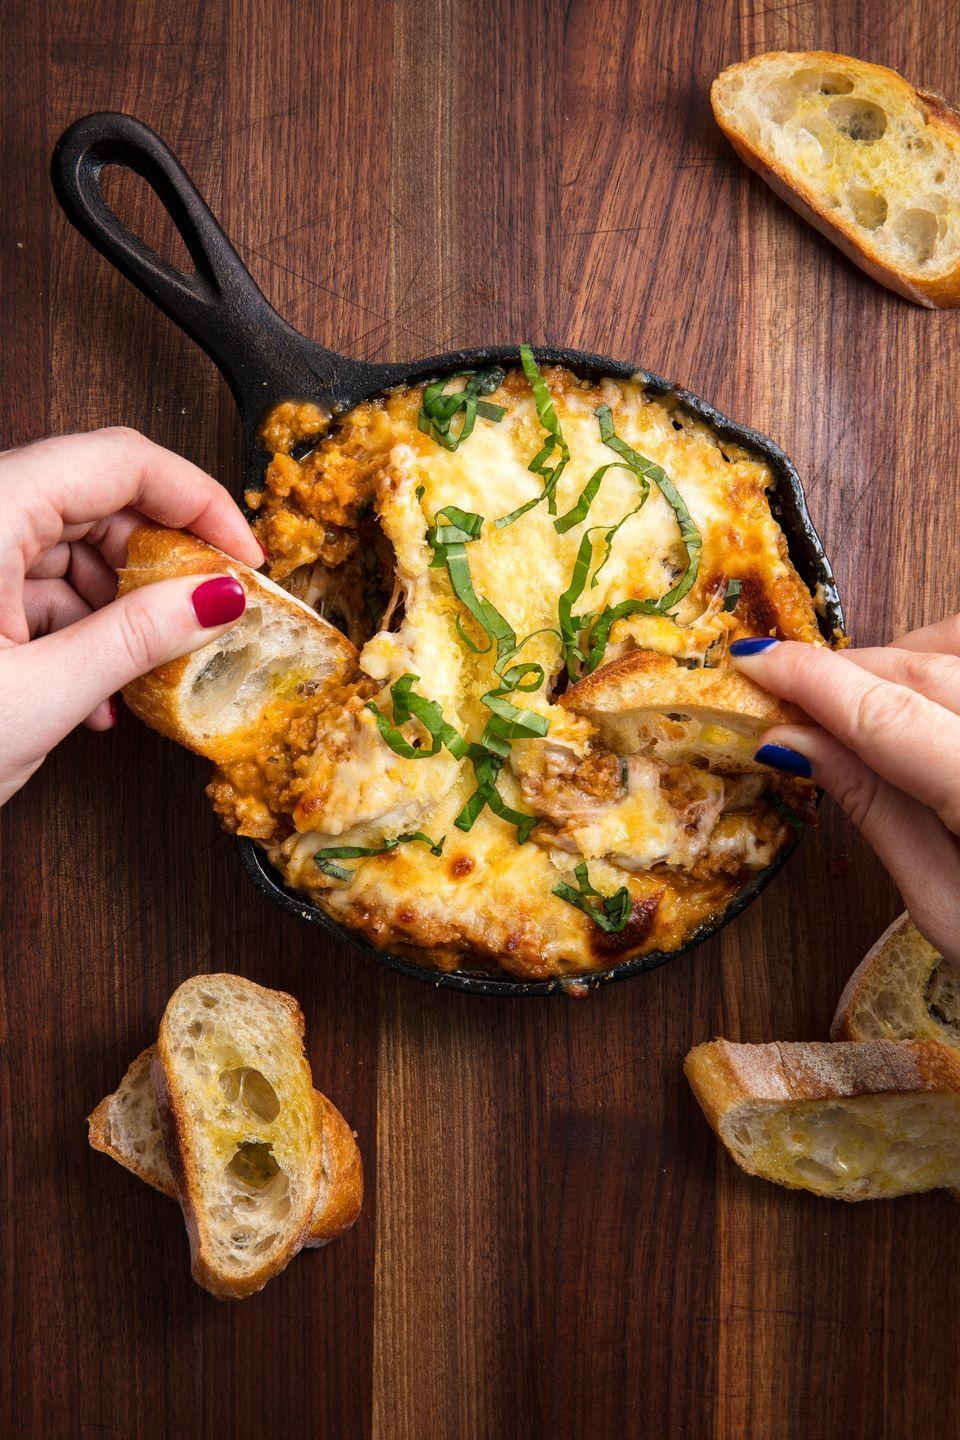 """<p>Everything you love about eggplant Parm, melted together in one cheesy dip. (Extra credit for serving with grilled bread.)</p><p>Get the recipe from <a href=""""https://www.delish.com/cooking/recipe-ideas/recipes/a48047/eggplant-parm-dip-recipe/"""" rel=""""nofollow noopener"""" target=""""_blank"""" data-ylk=""""slk:Delish"""" class=""""link rapid-noclick-resp"""">Delish</a>.</p>"""